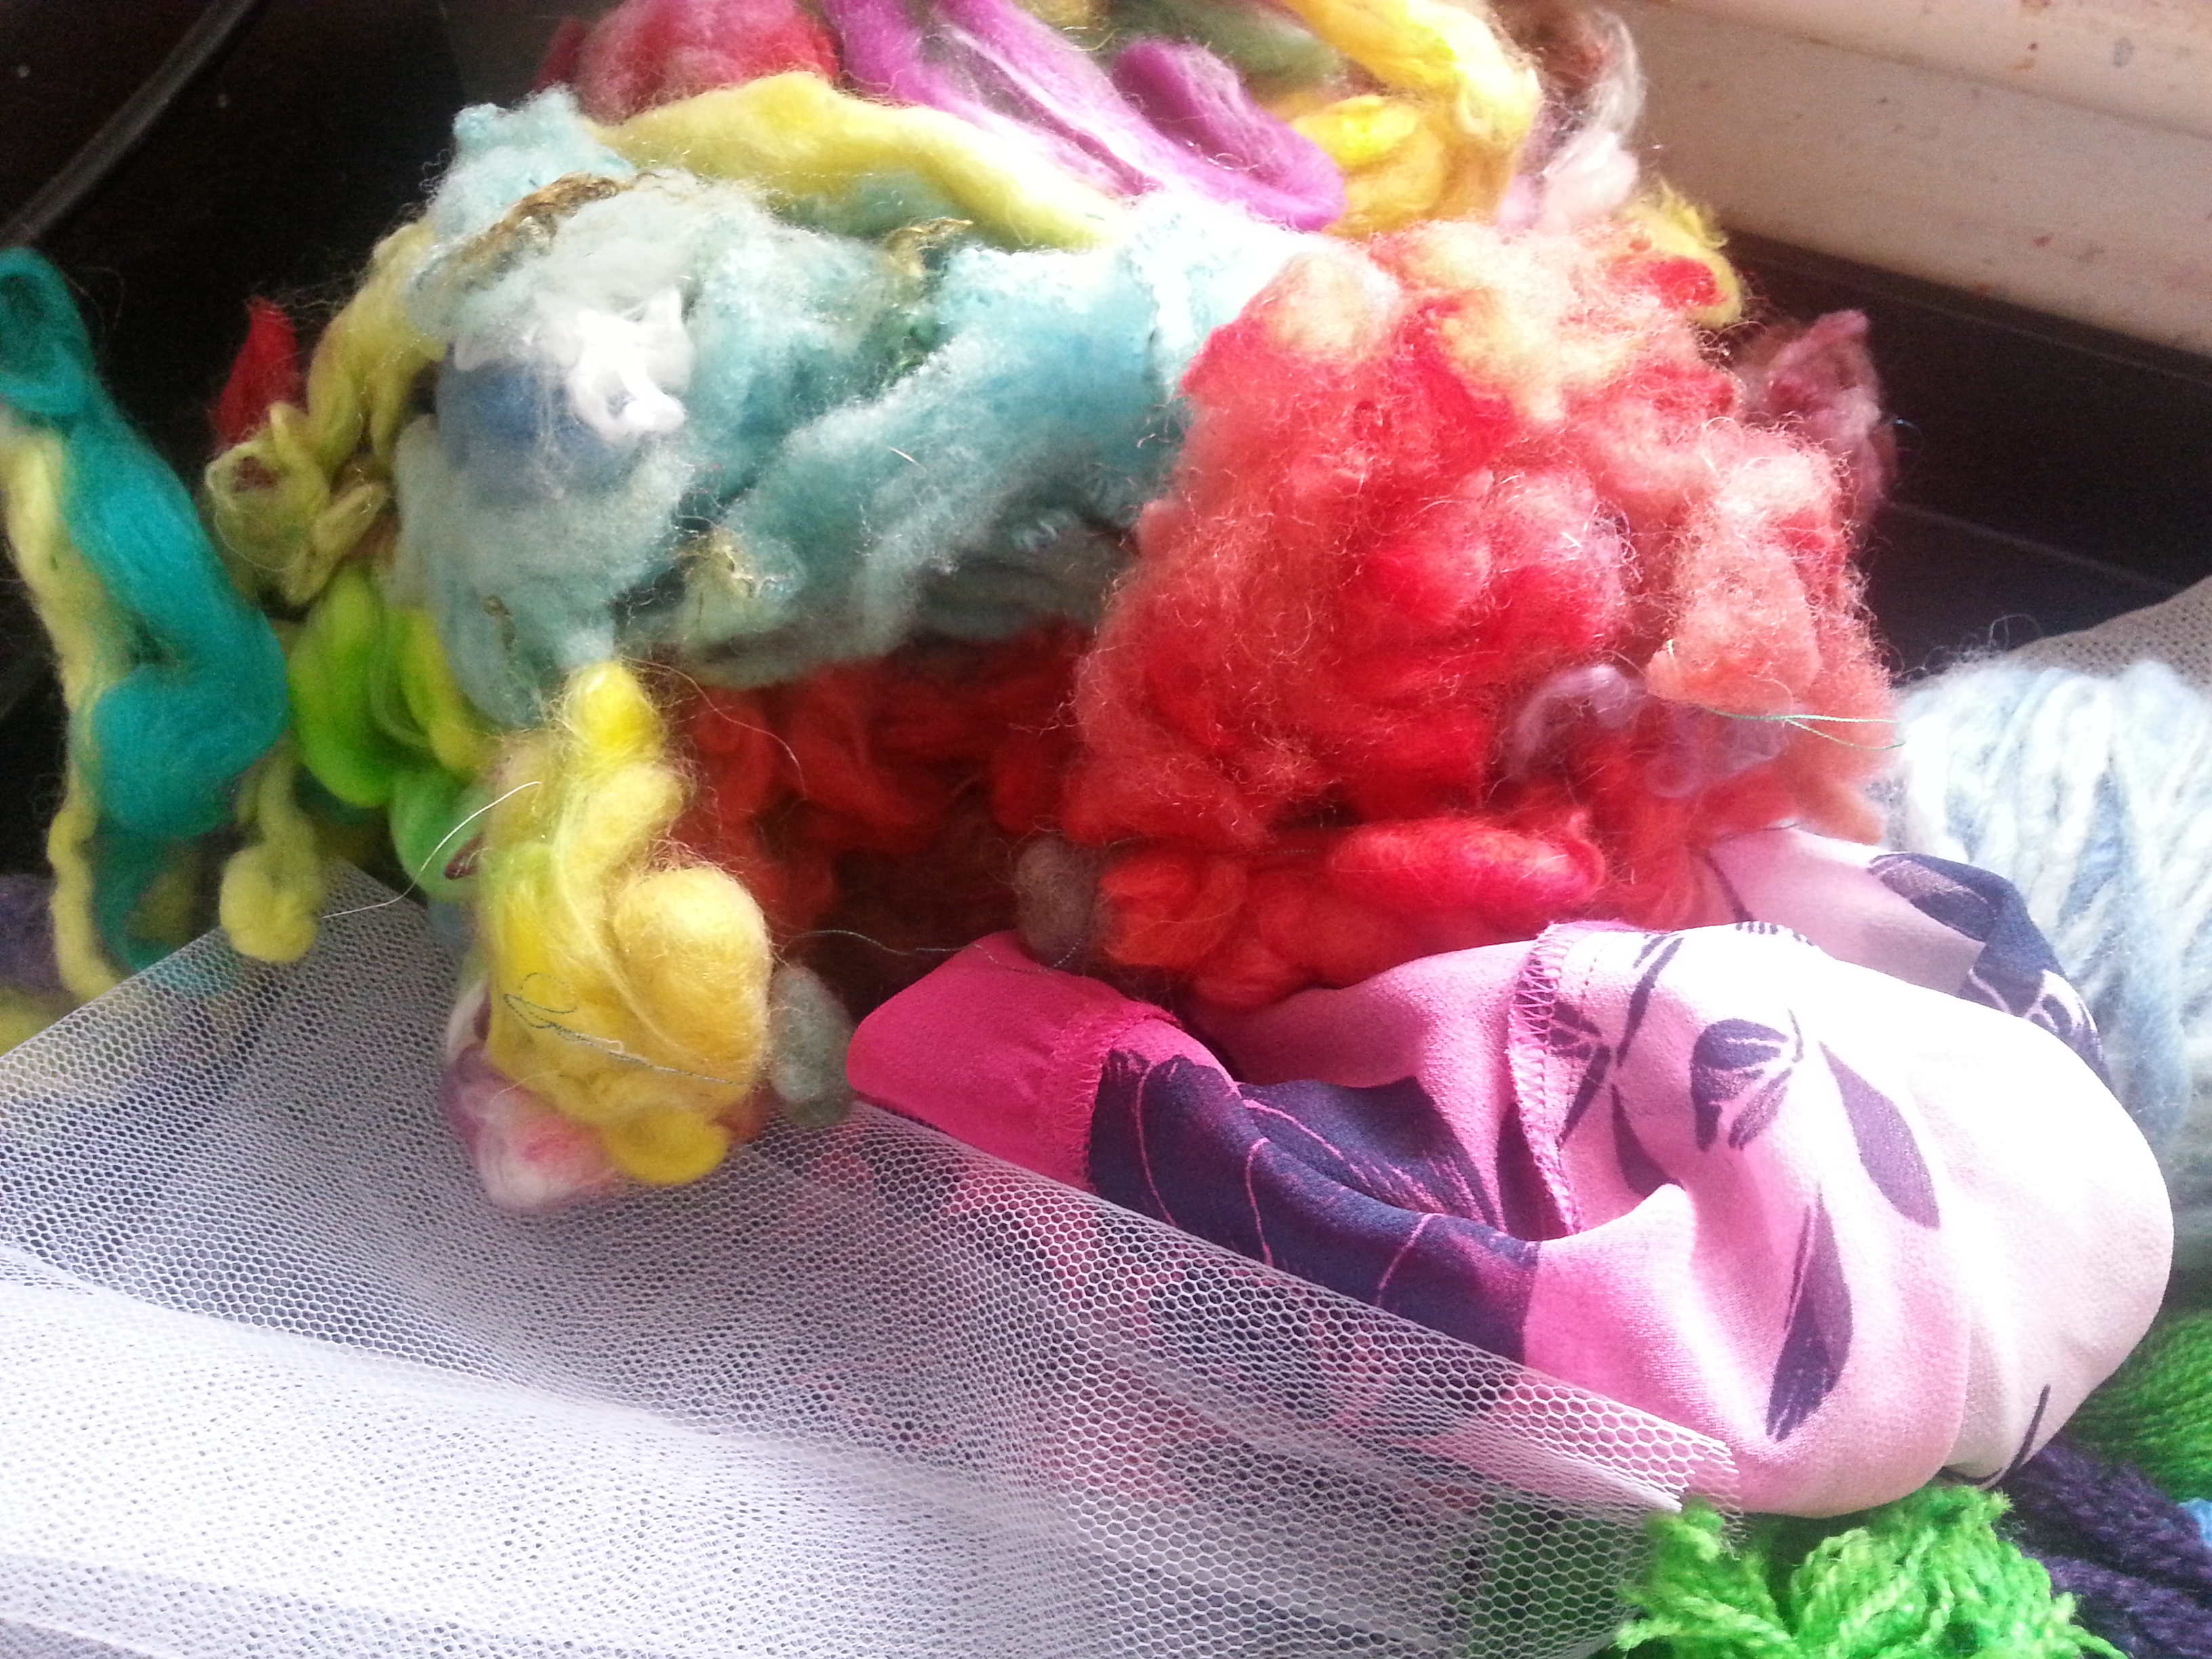 Raw hand-dyed wool ready for felting